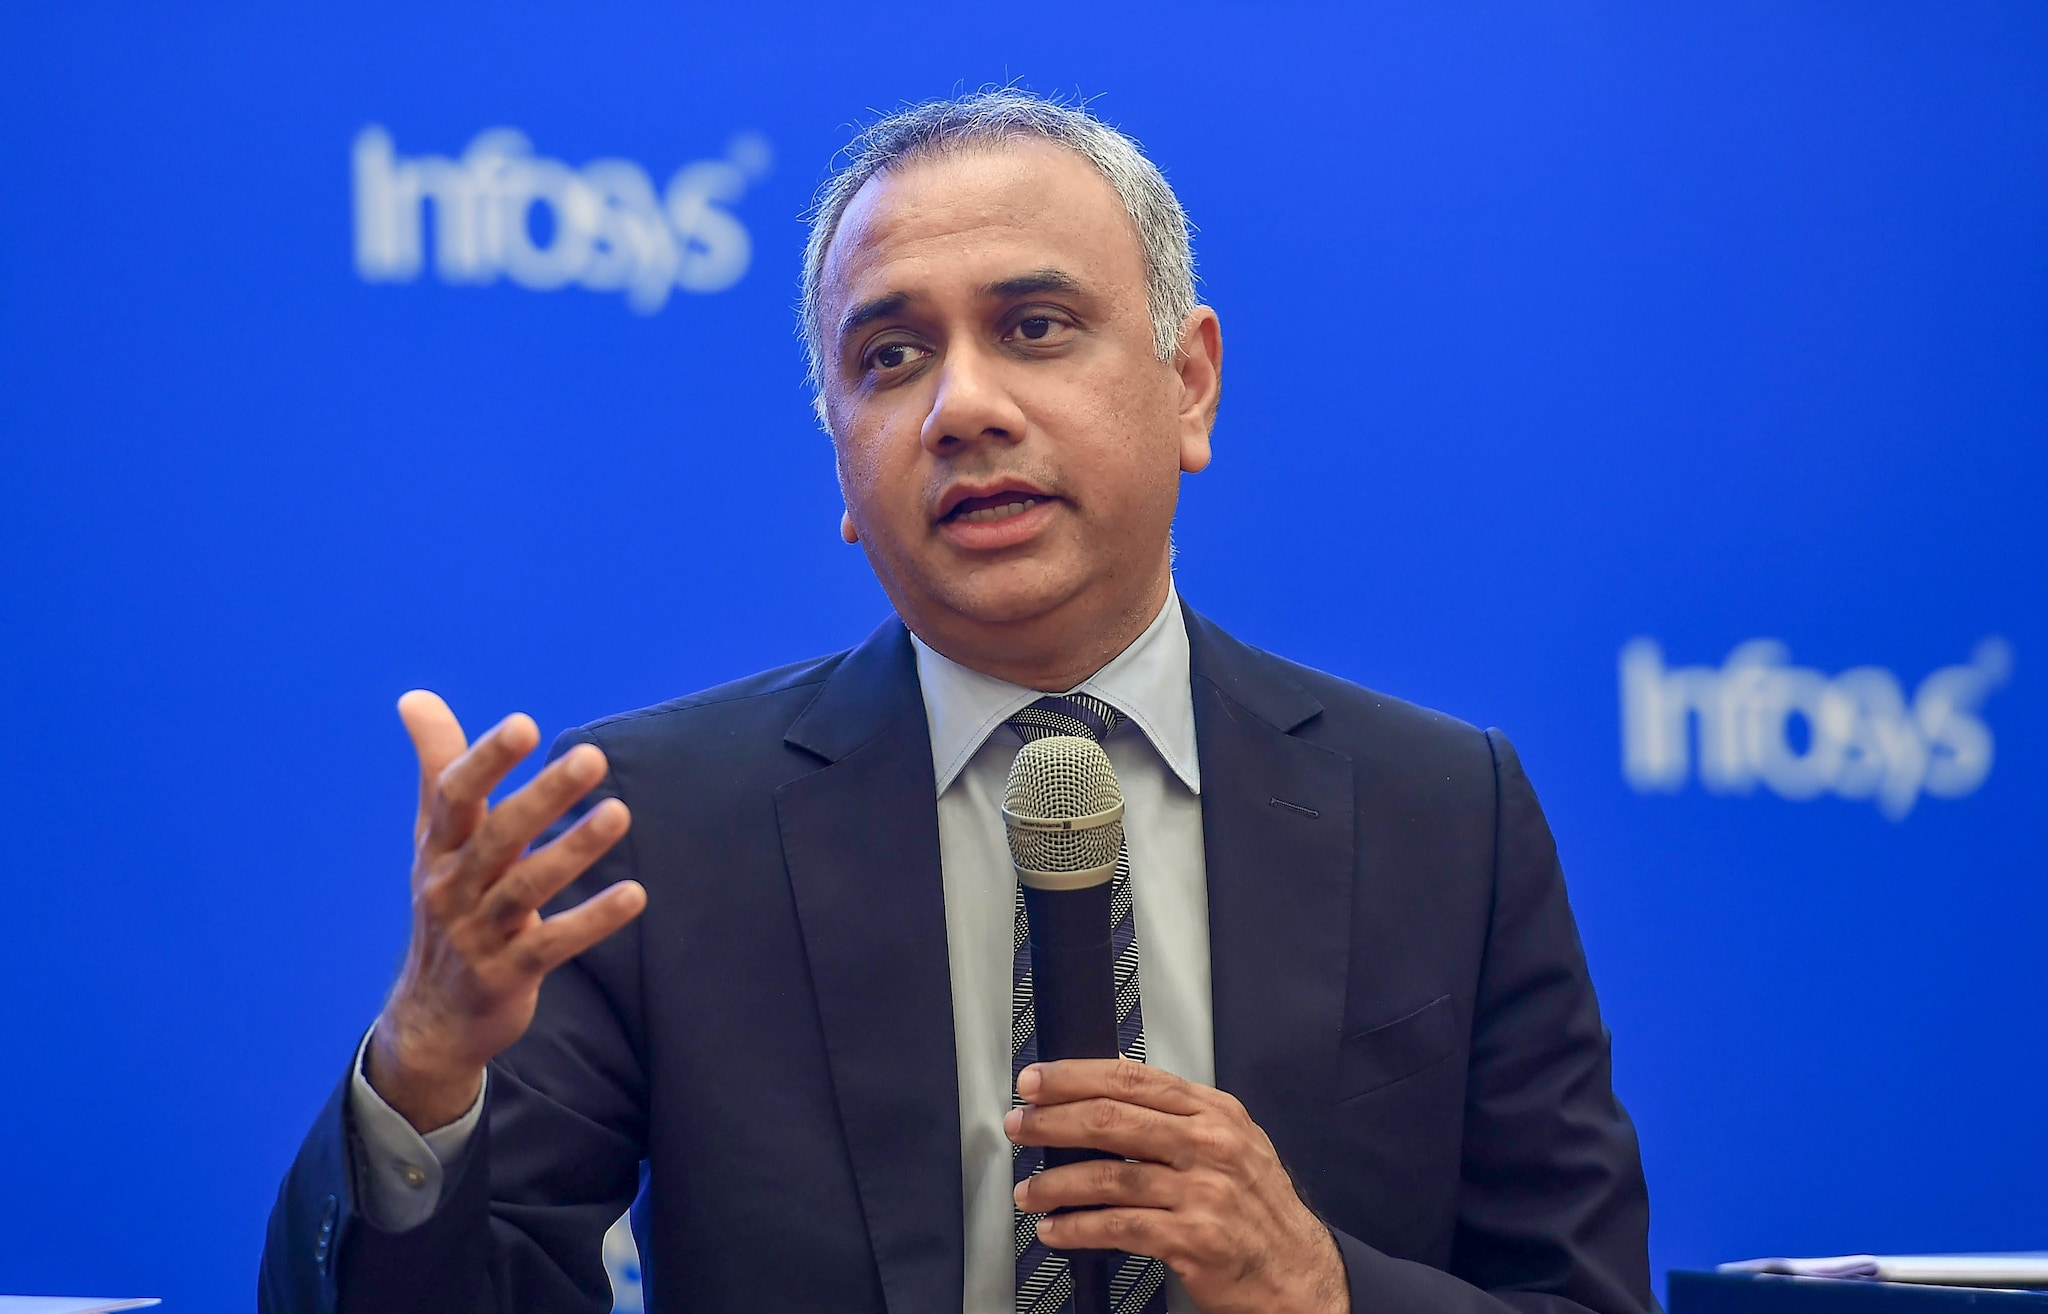 Salil Parekh, Infosys CEO, took home a pay package of Rs 24.67 crore in FY19. He received Rs 6.07 crore in fixed salary, Rs 10.96 crore in bonus, incentives and variable pay and Rs 7.64 crore in perquisites on account of exercise of 1,03,604 restricted stock units (RSUs) during the FY. (Image: PTI)